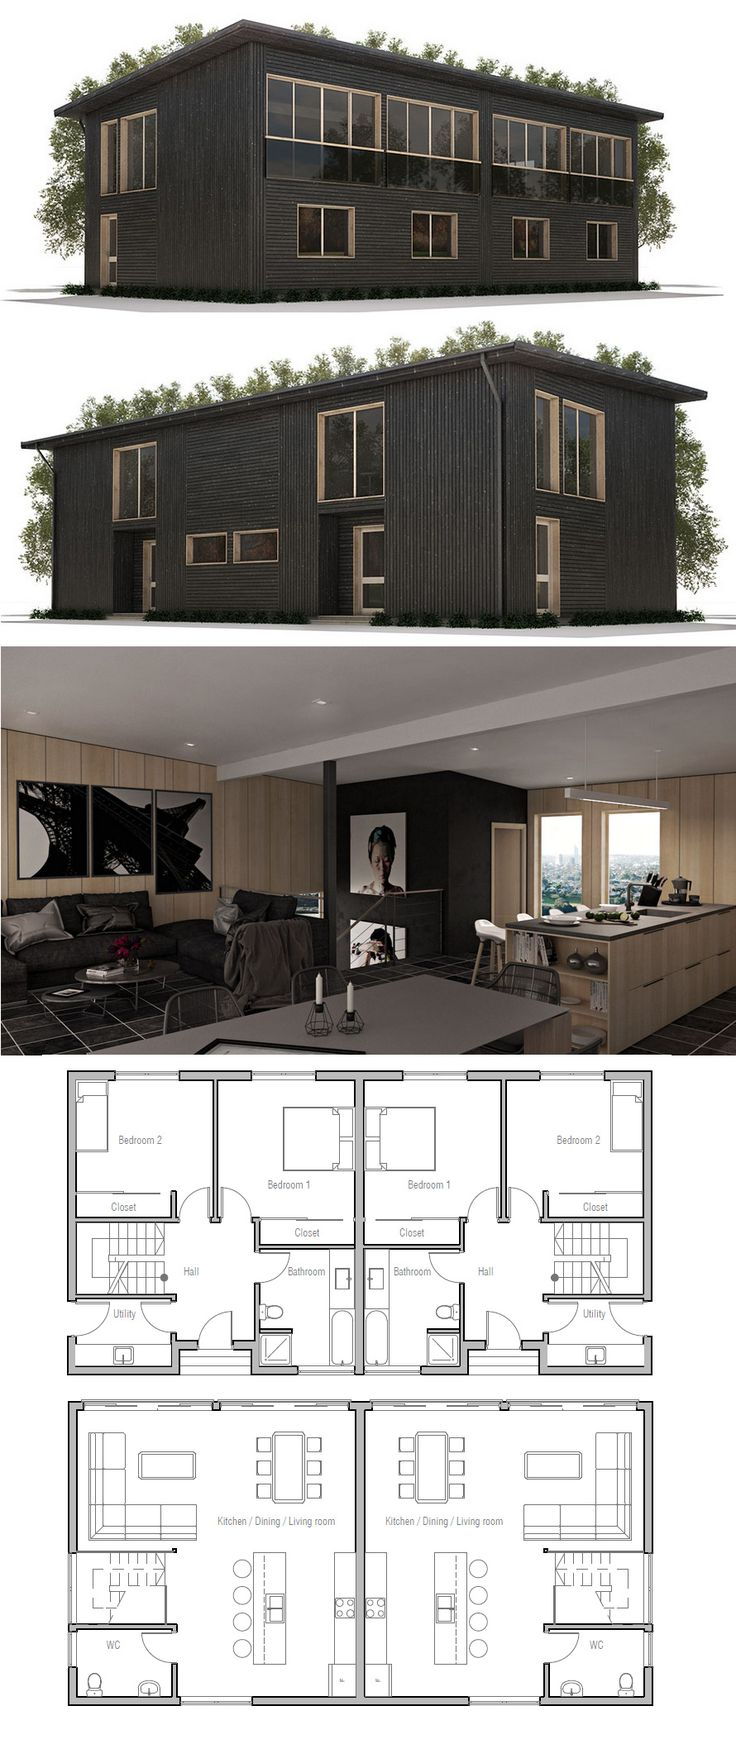 Plan de maison duplex maison duplex pinterest house for Maison duplex plan